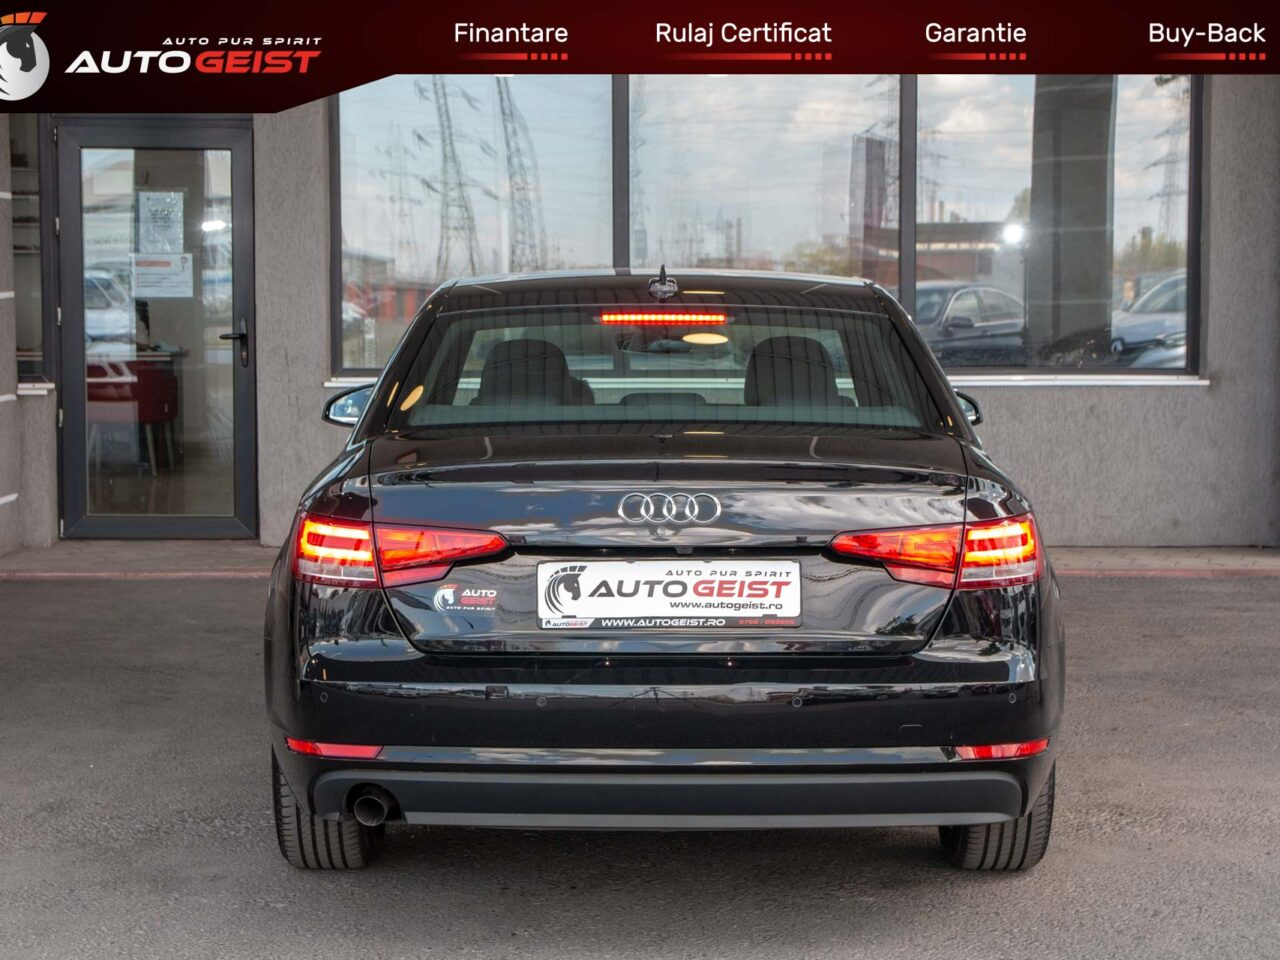 audi-a4-businessline-8403